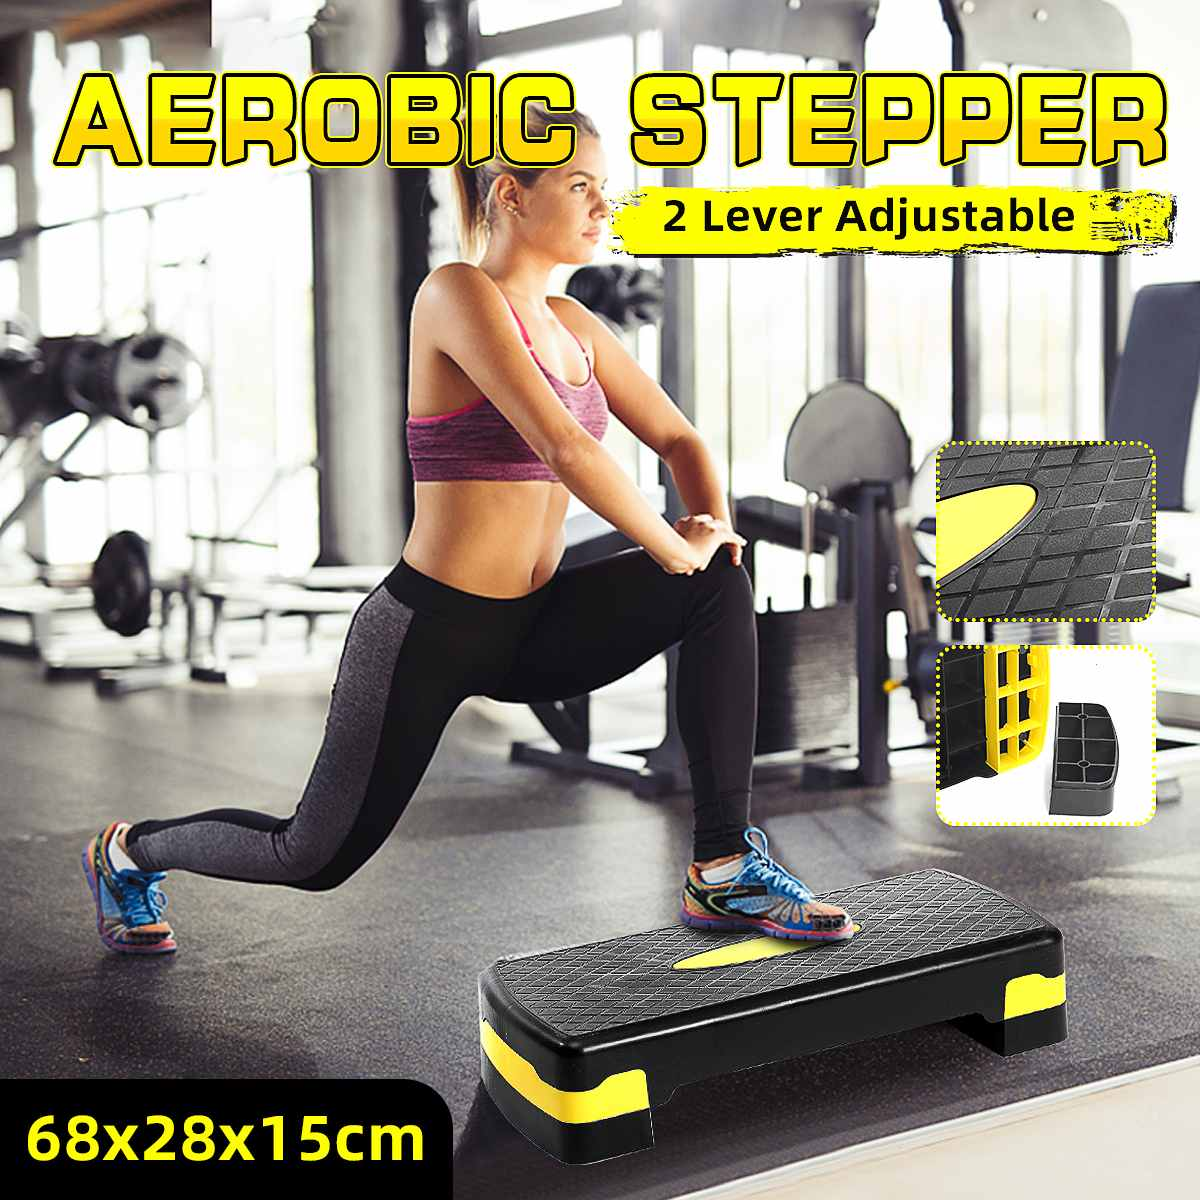 Fitness Aerobic Step Adjustable Stepping Height Cardio Yoga Pedal Stepper Gym Workout Exercise Fitne